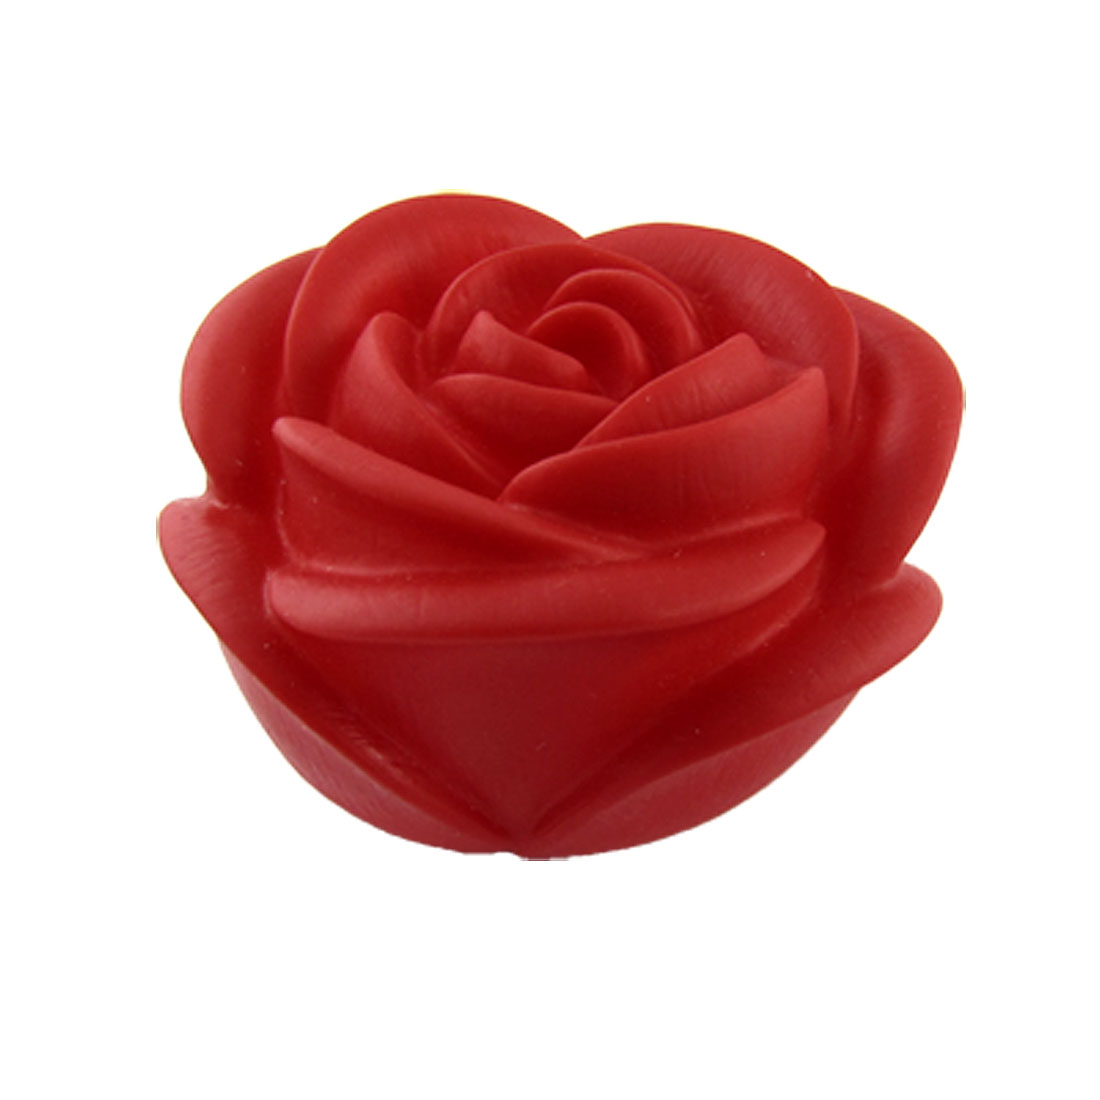 Home Bedroom Desktop Ornament Rose Shape Night Light Lamp Red Rose Shape